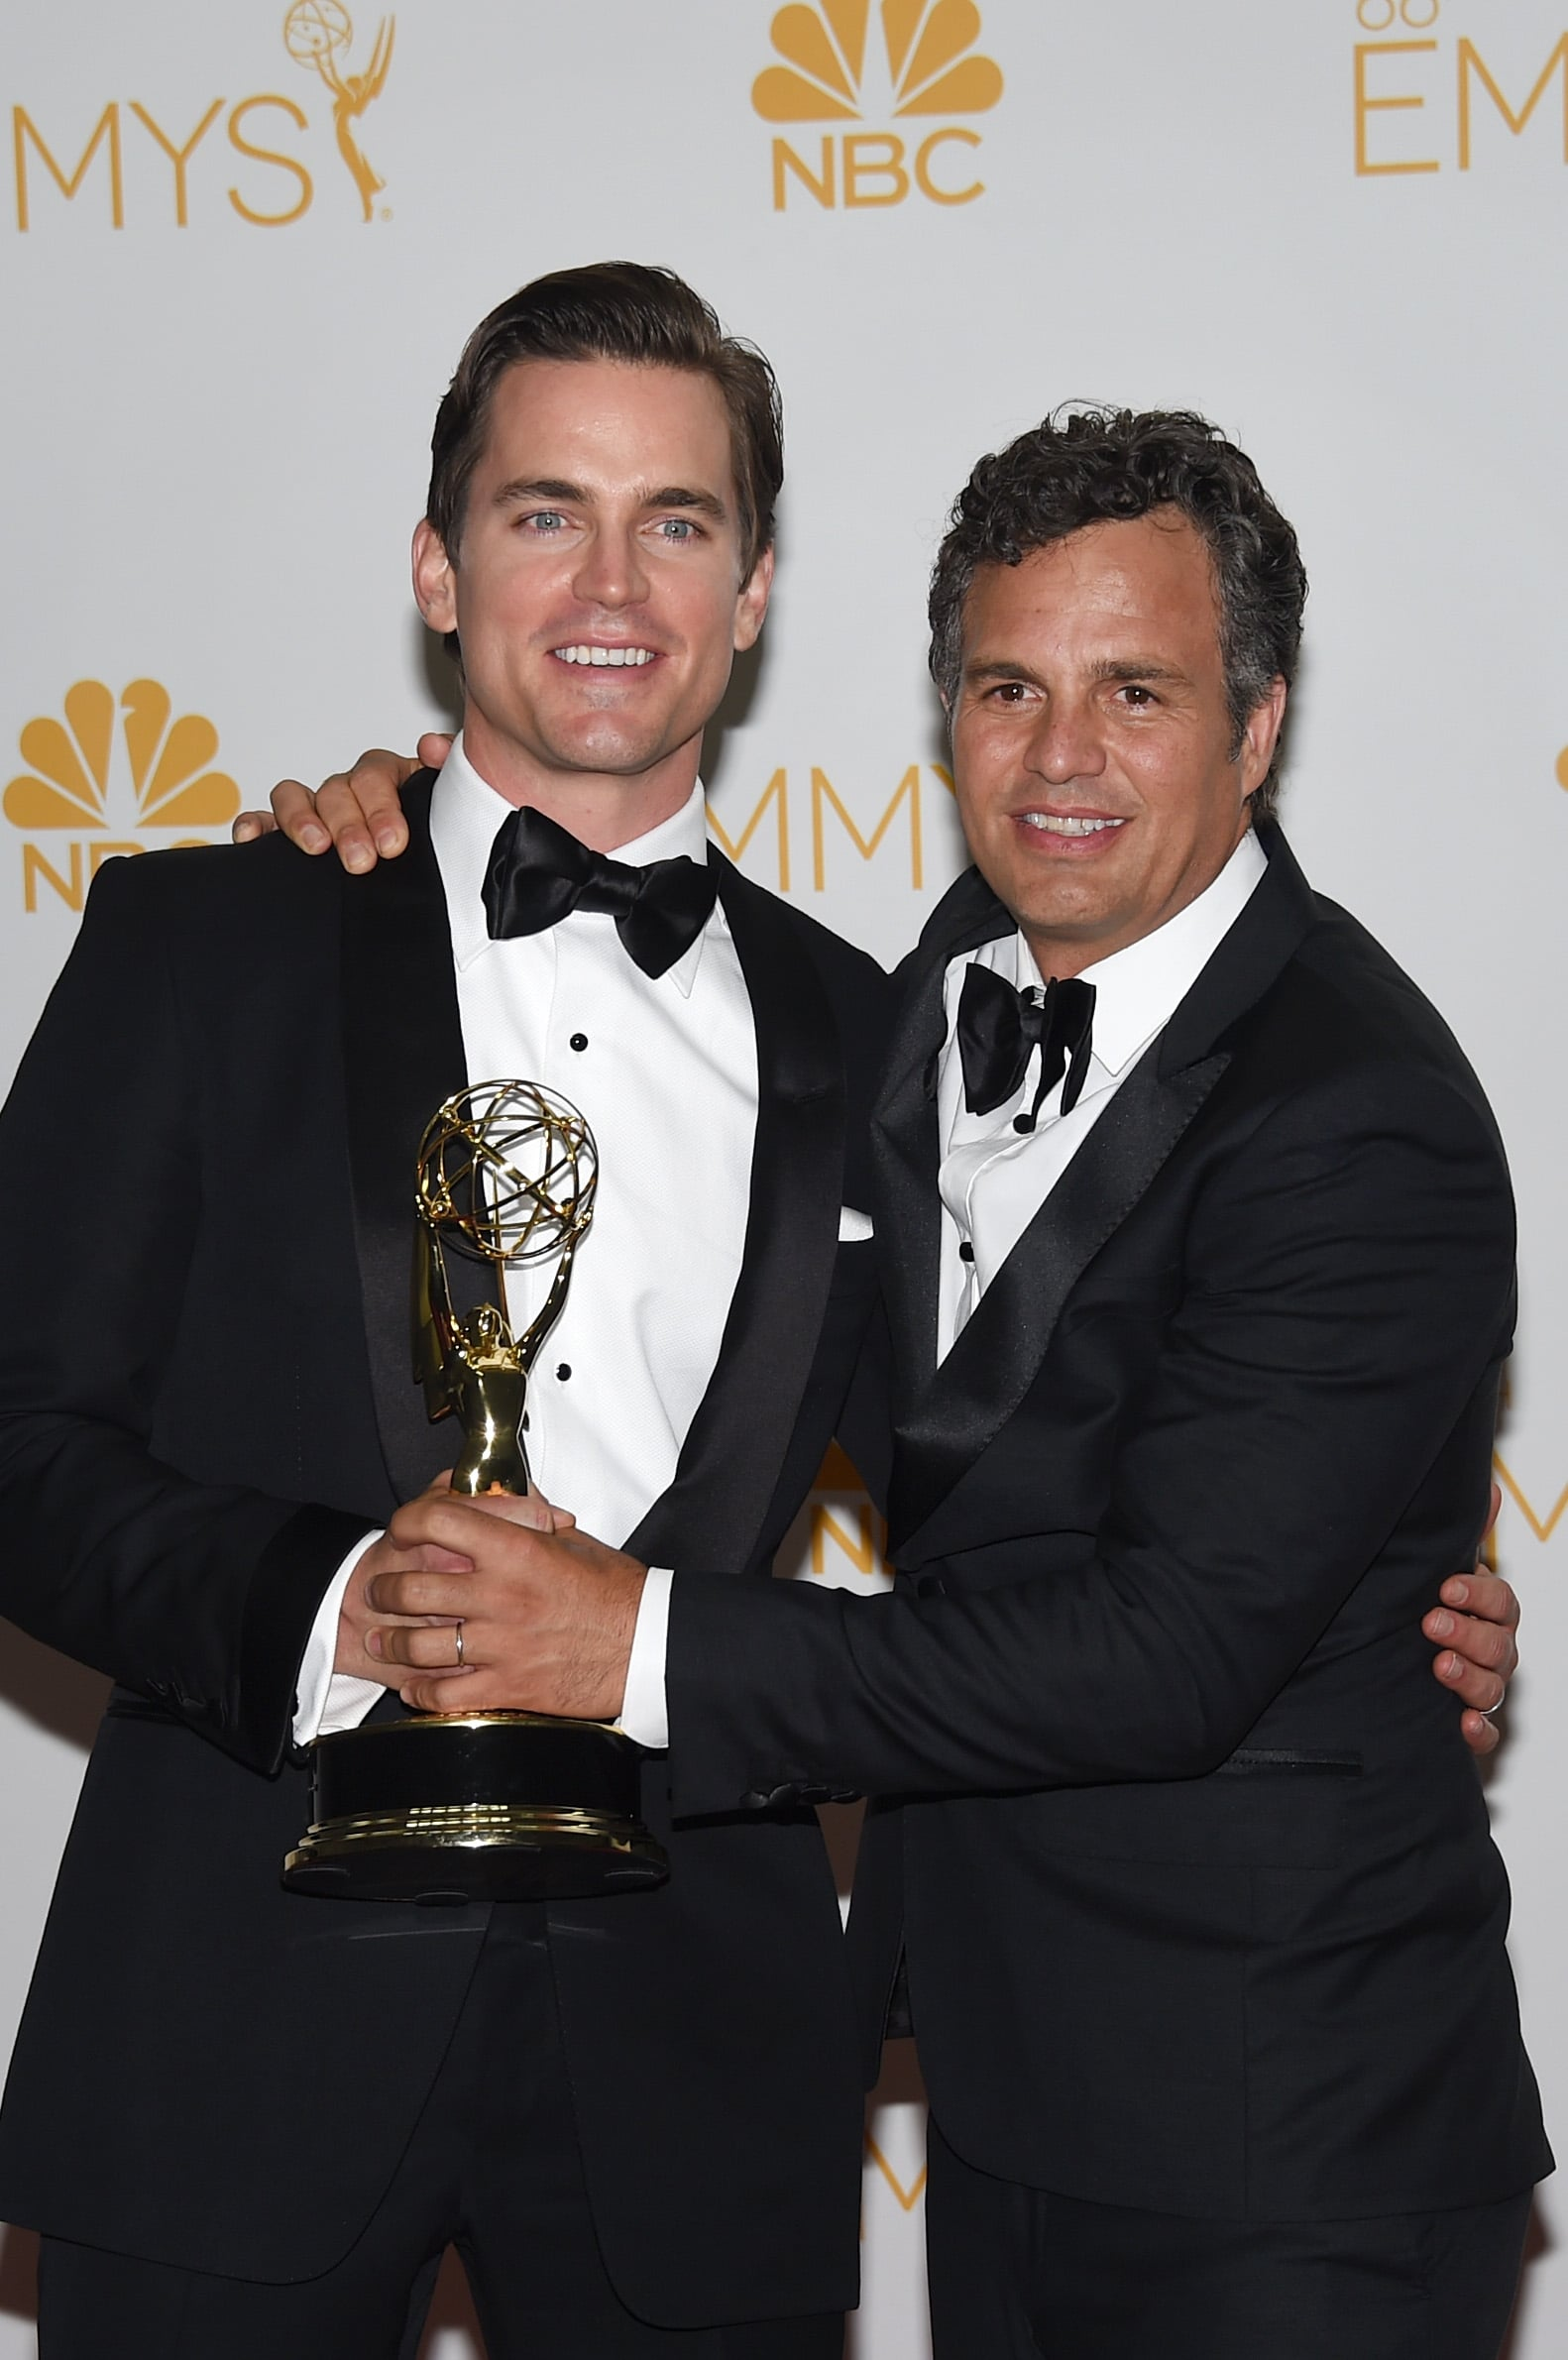 Matt Bomer and Mark Ruffalo celebrated The Normal Heart's Emmy win in the press room.